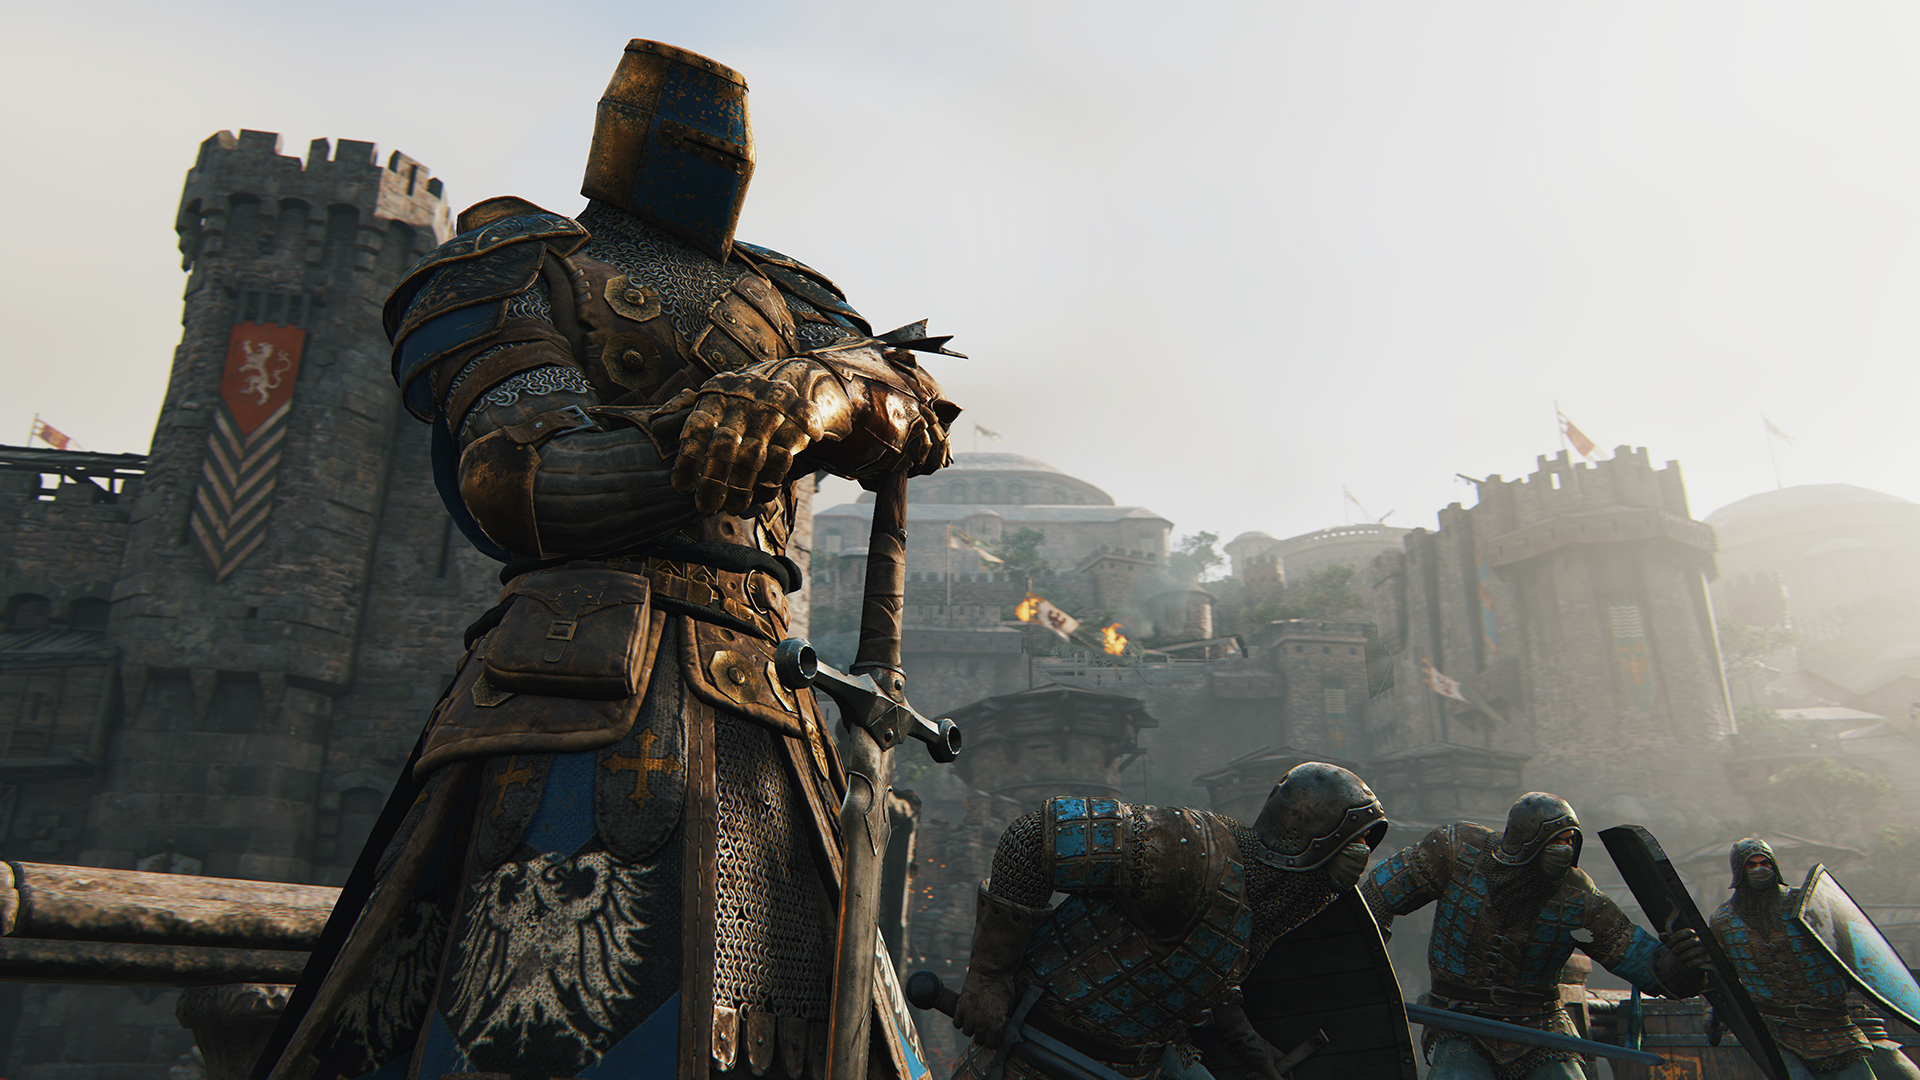 1920x1080 > For Honor Wallpapers